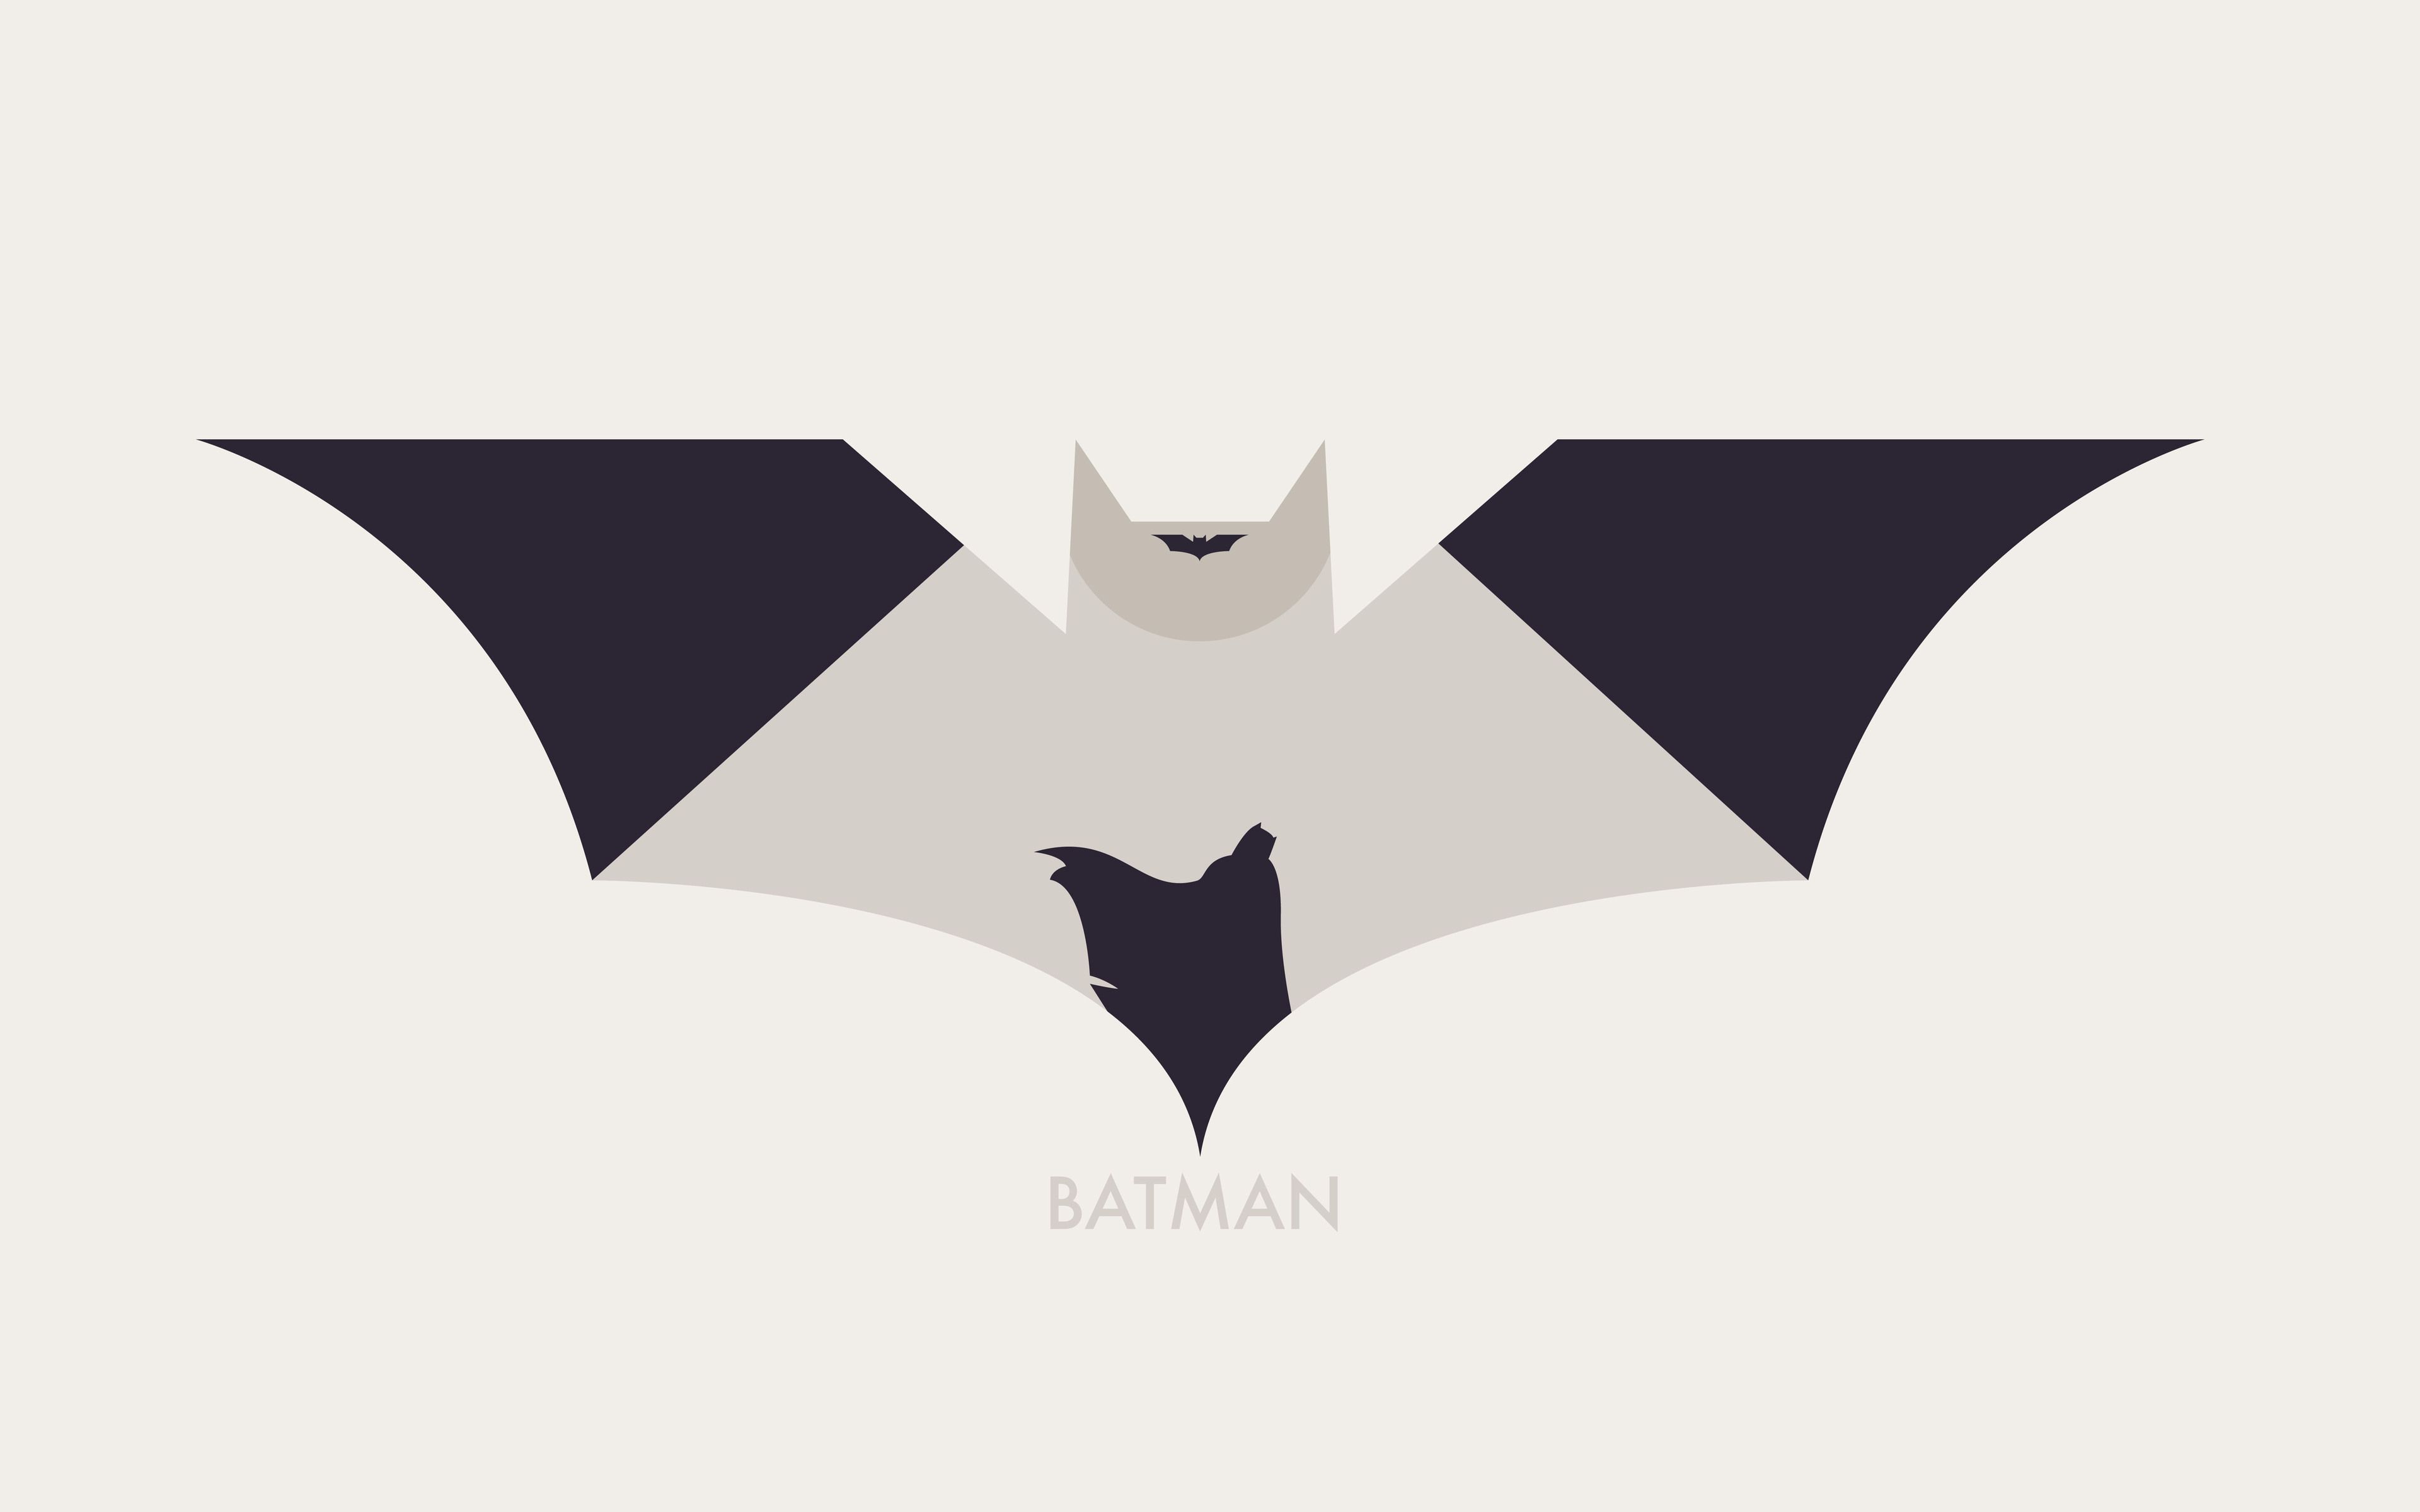 batman-logo-8k-art-84.jpg